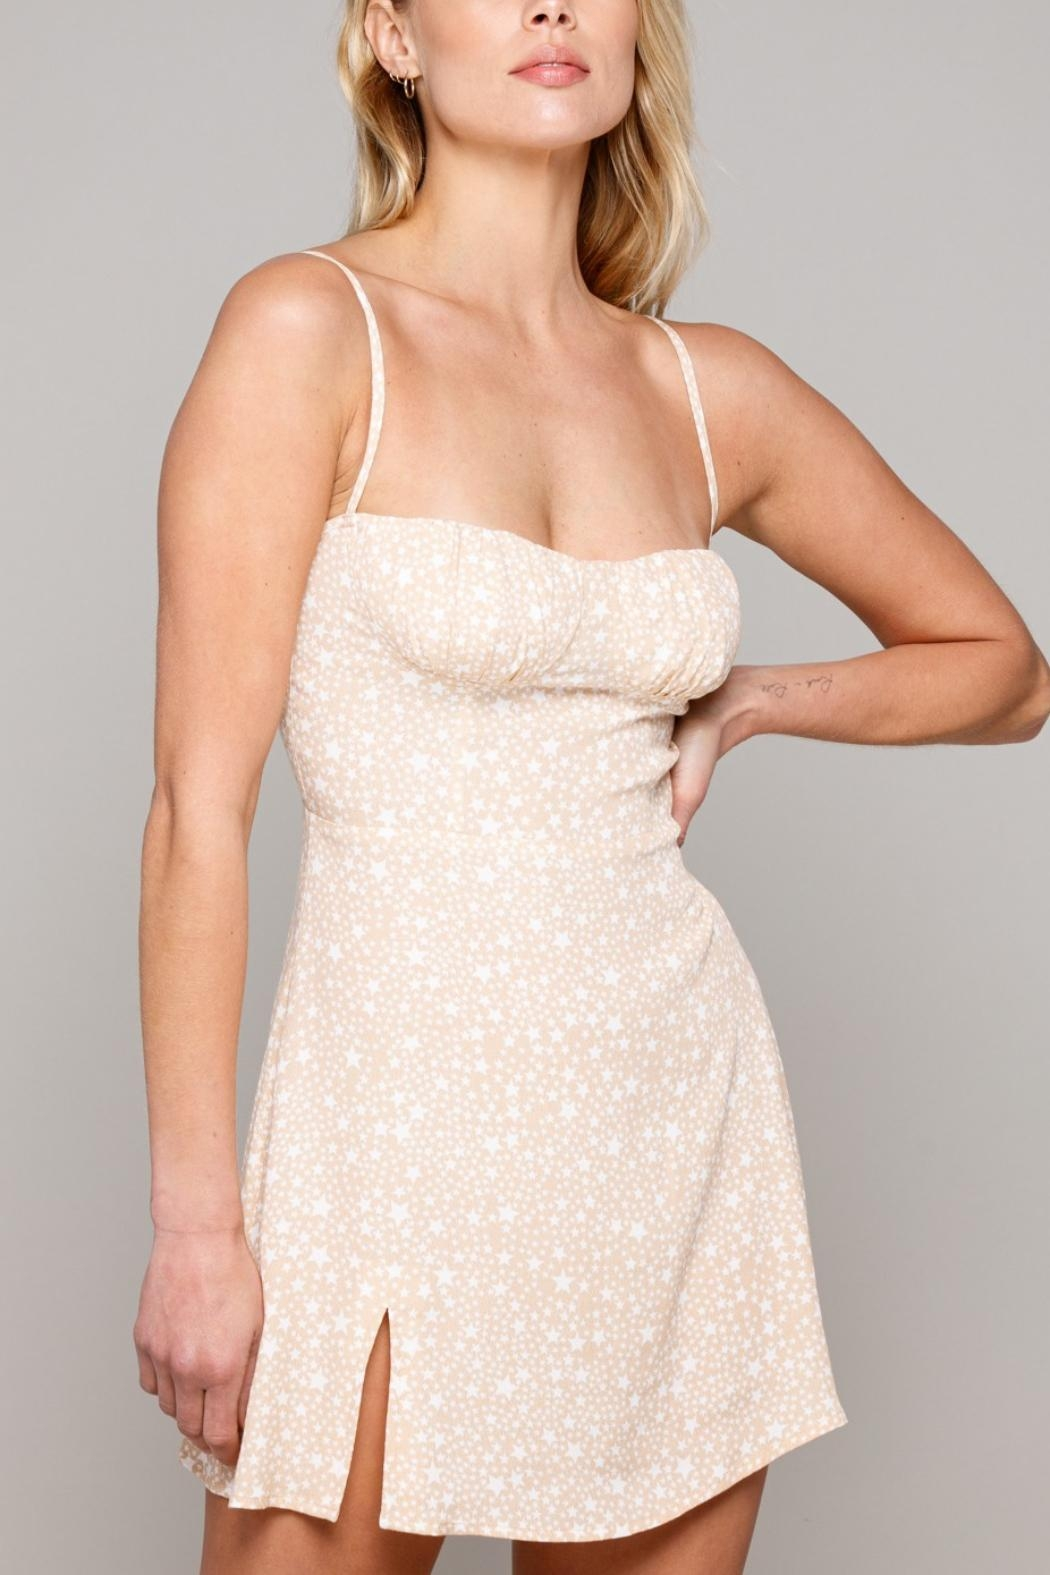 Pretty Little Things Star Bustier Dress - Main Image